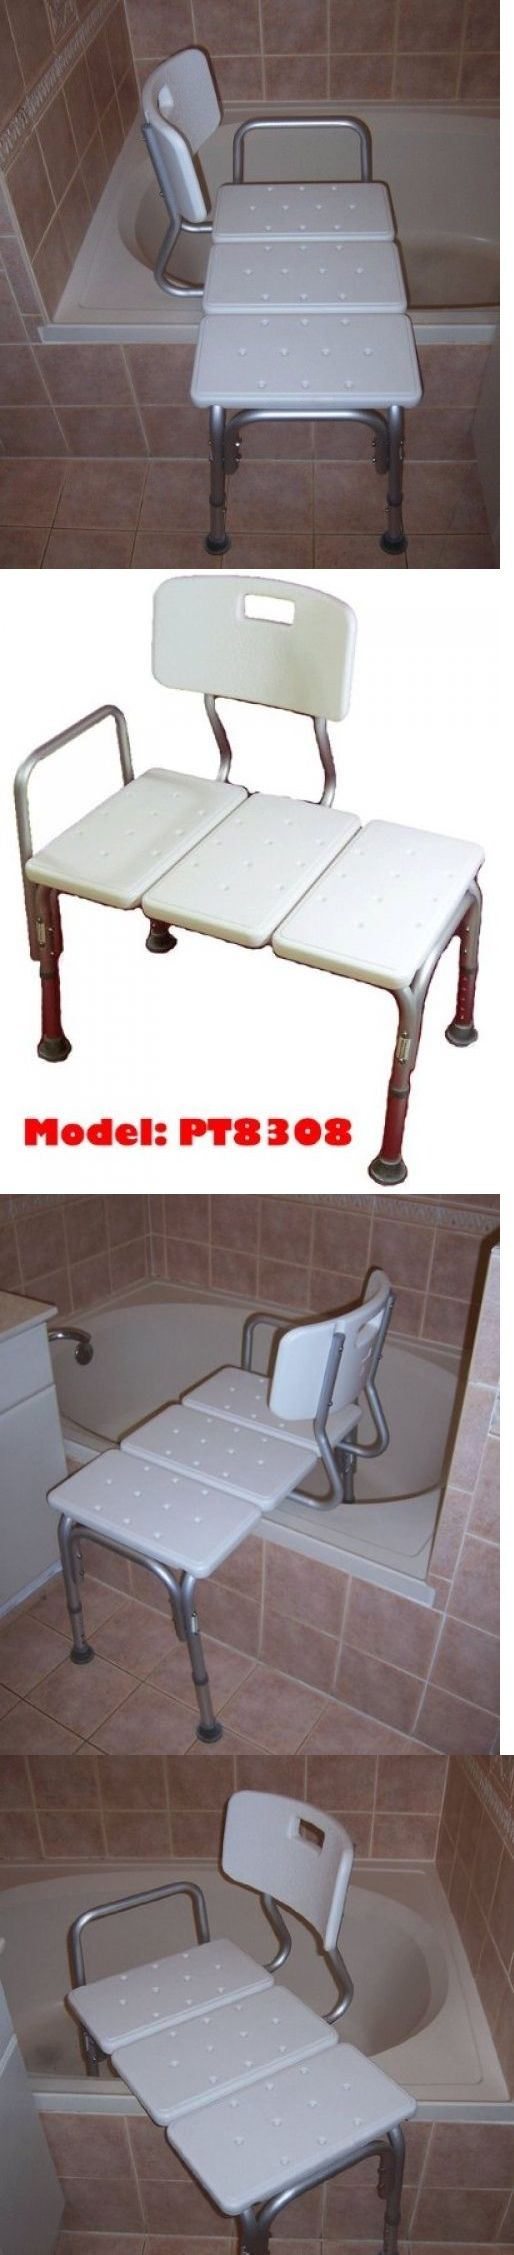 Bath chair for seniors - Shower And Bath Seats Shower Chairs For Elderly Medical Disabled Handicapped Bath Bathtub Seat Bench